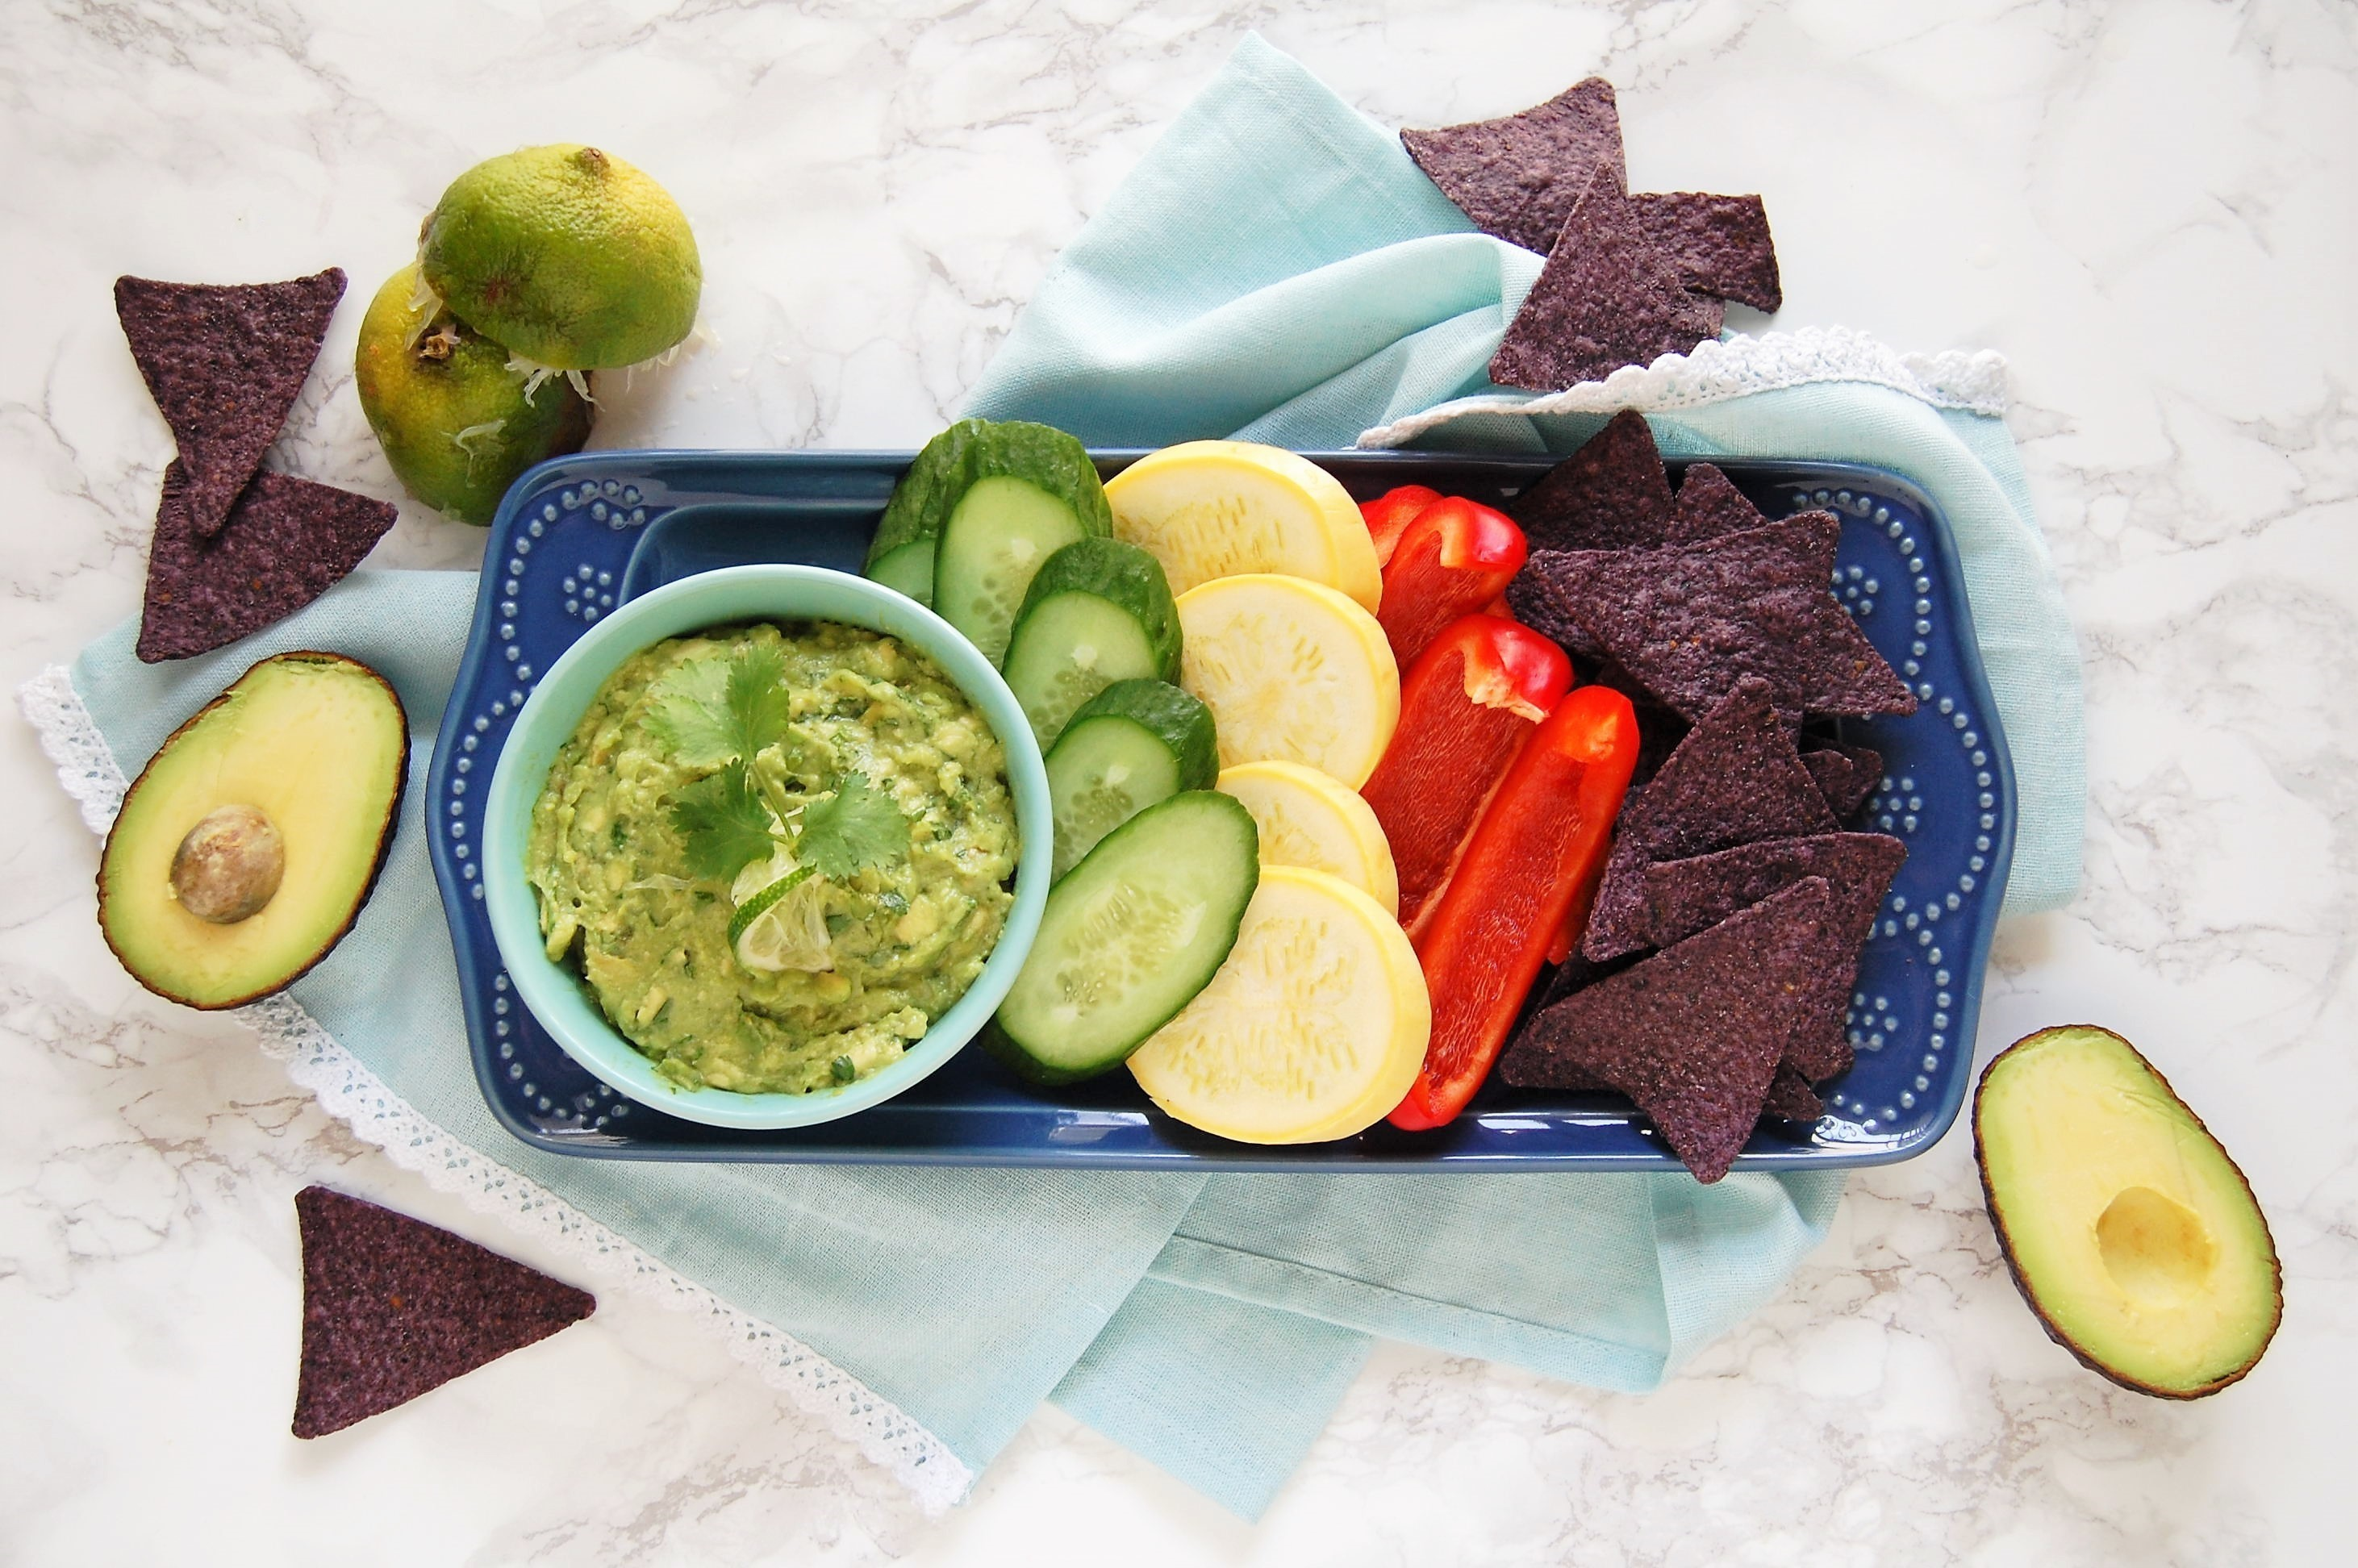 This is a super easy guacamole recipe with just three ingredients (plus salt). So easy, kid-friendly, and perfect for Cinco de Mayo and all of your summer barbecues!